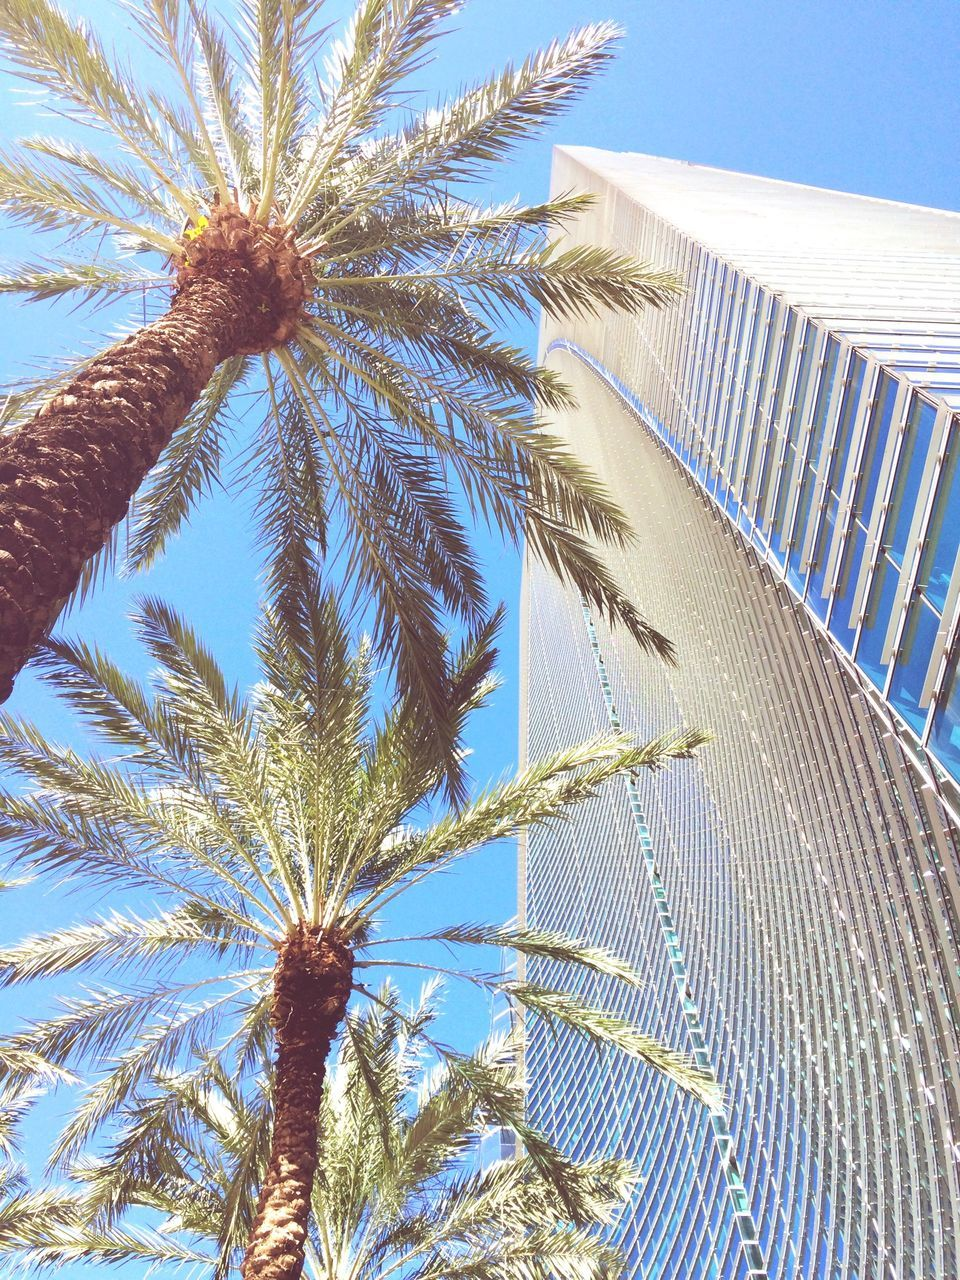 Low Angle View Of Palm Trees By Modern Building Against Sky